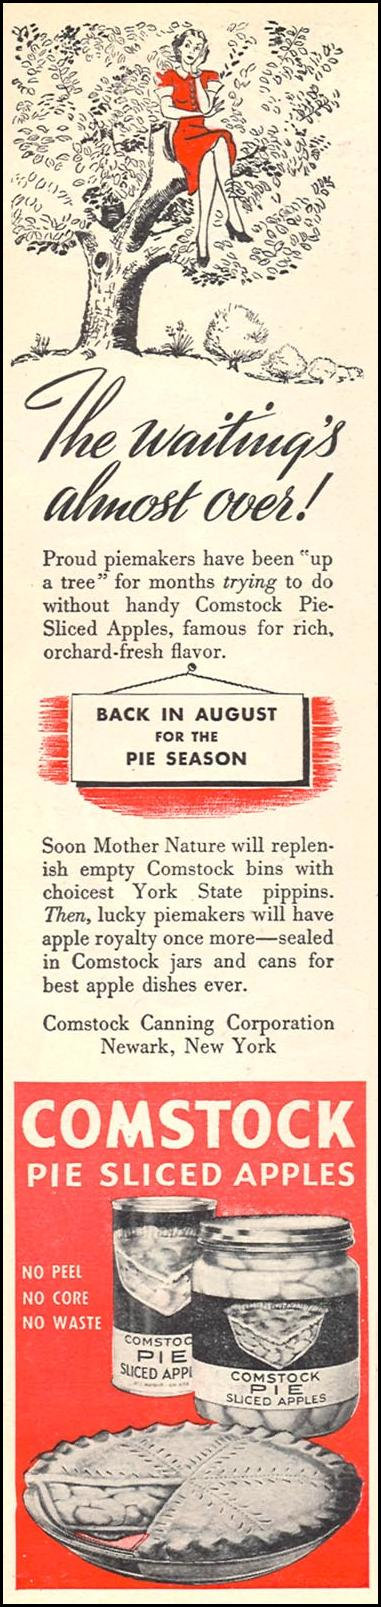 COMSTOCK PIE-SLICED APPLES WOMAN'S DAY 06/01/1946 p. 8